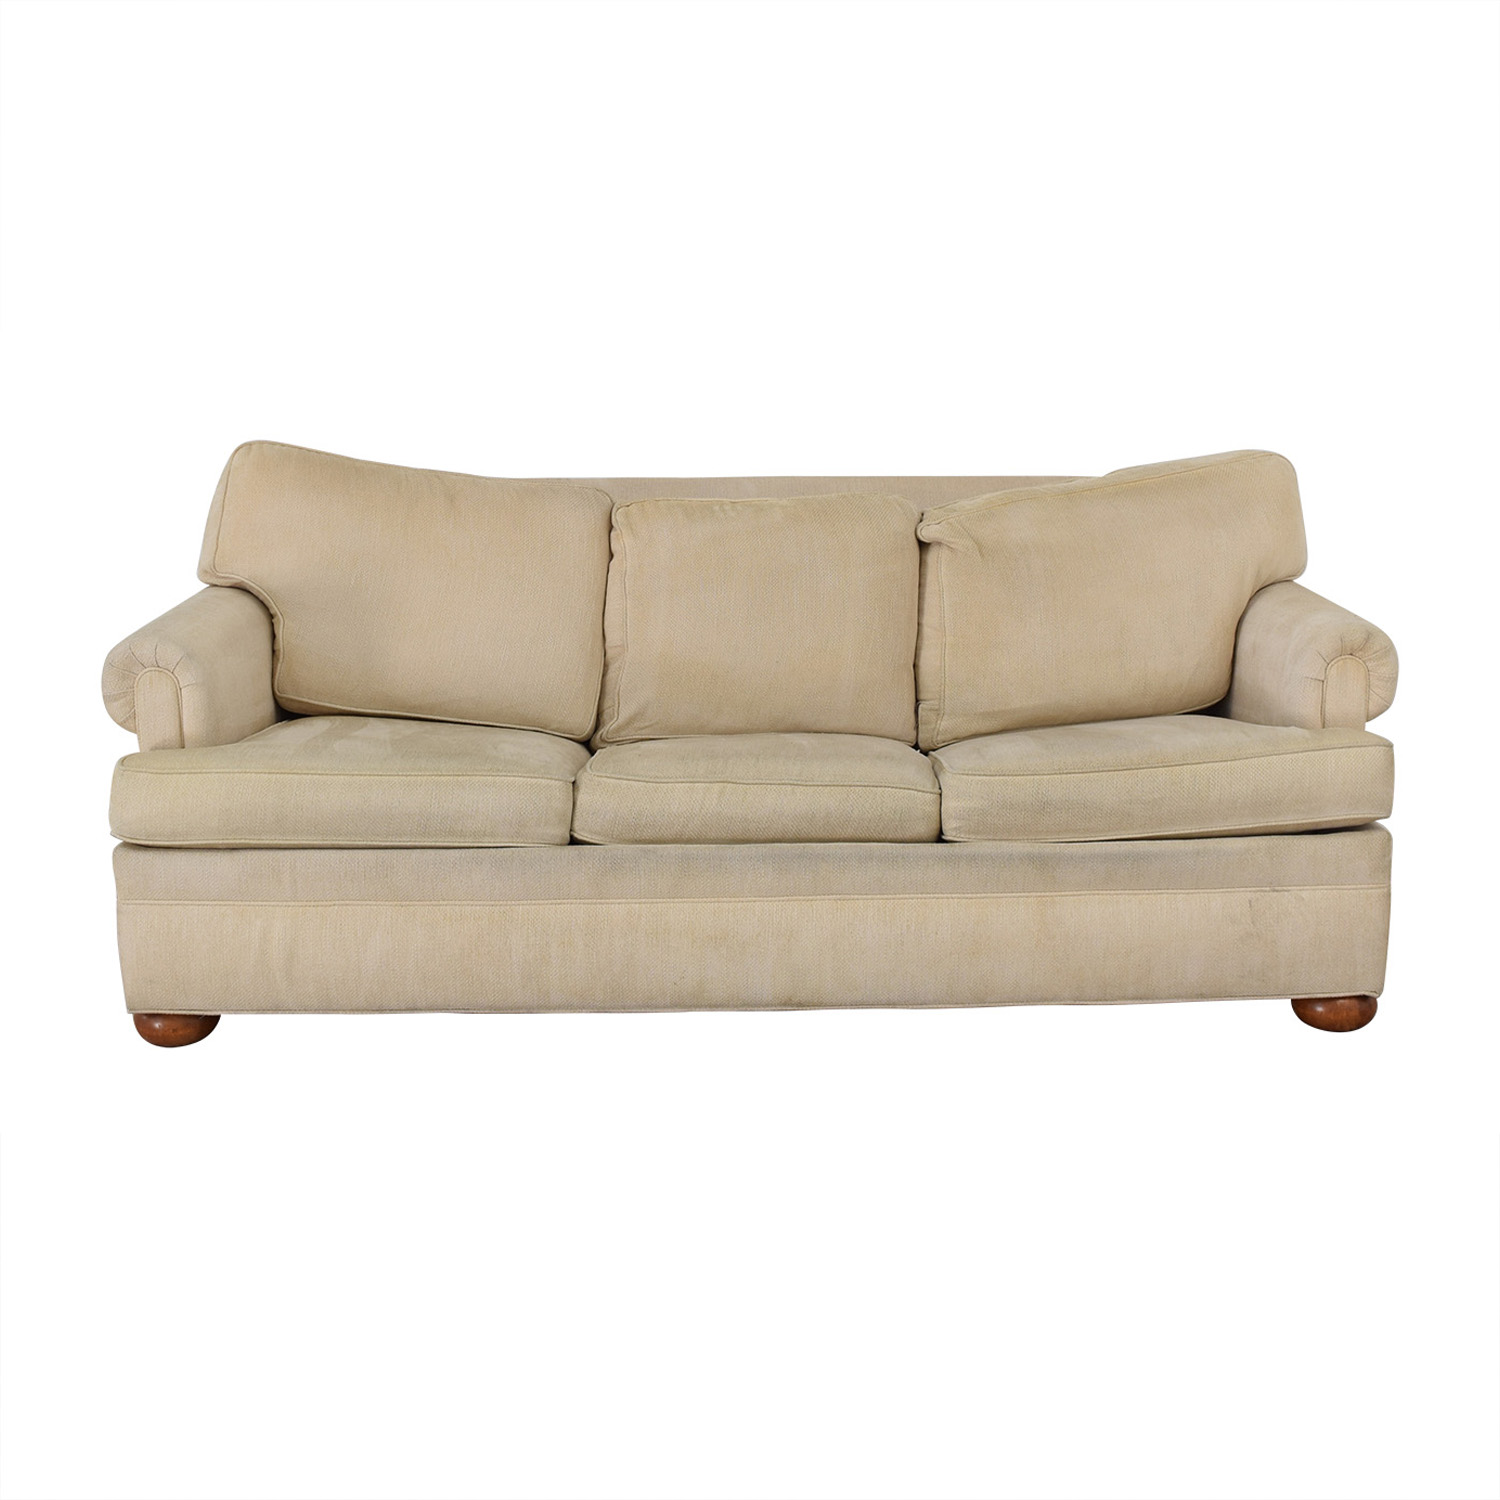 Ethan Allen Off White Three-Cushion Queen Convertible Sofa / Sofas